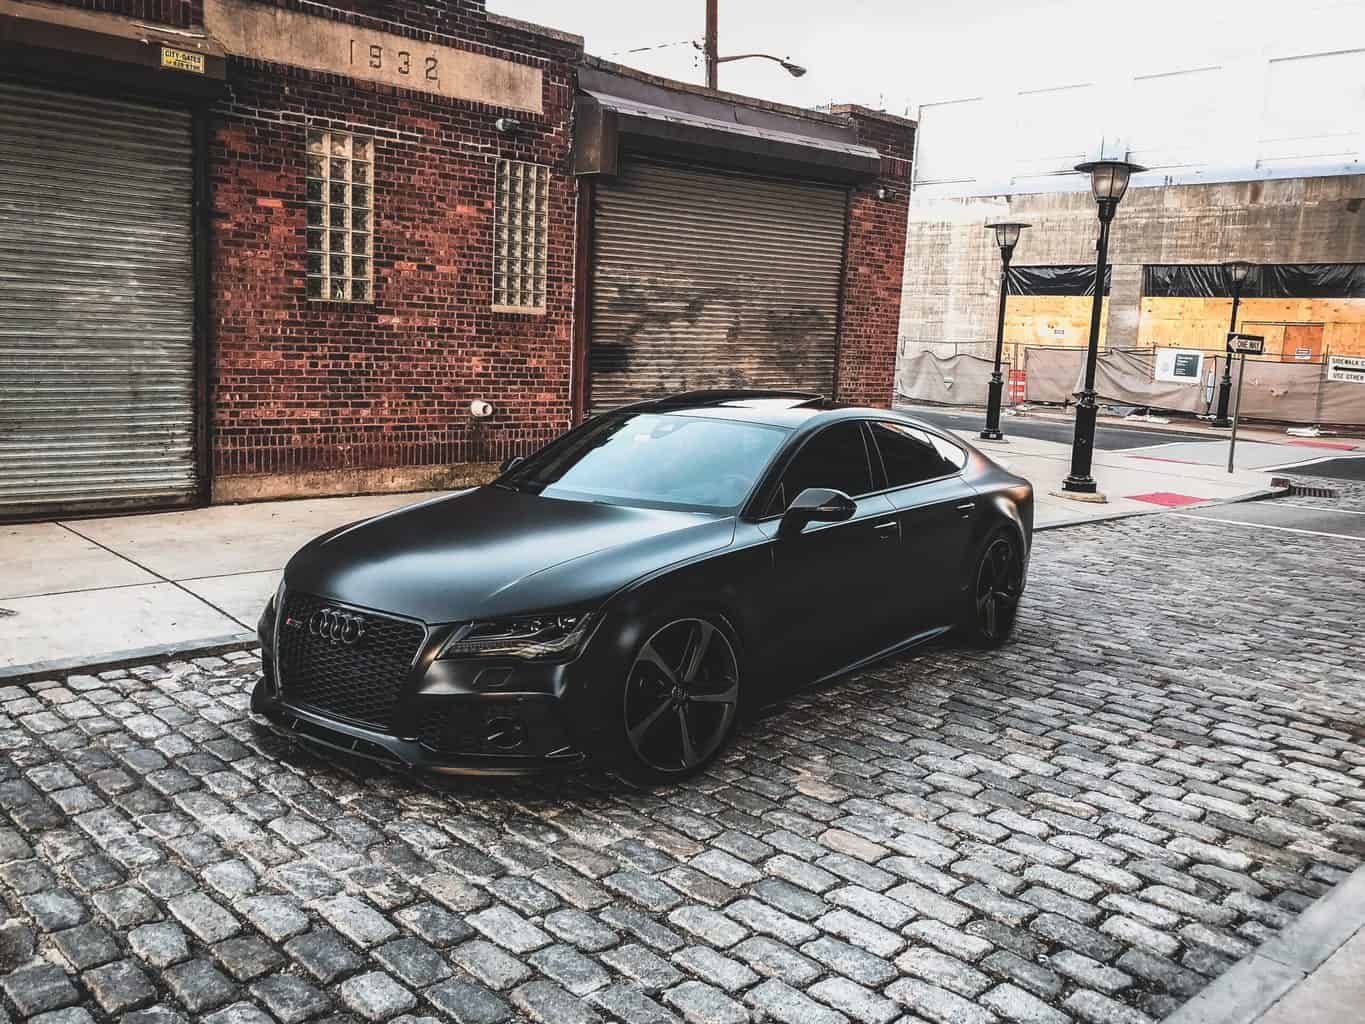 A side view of a black toned car